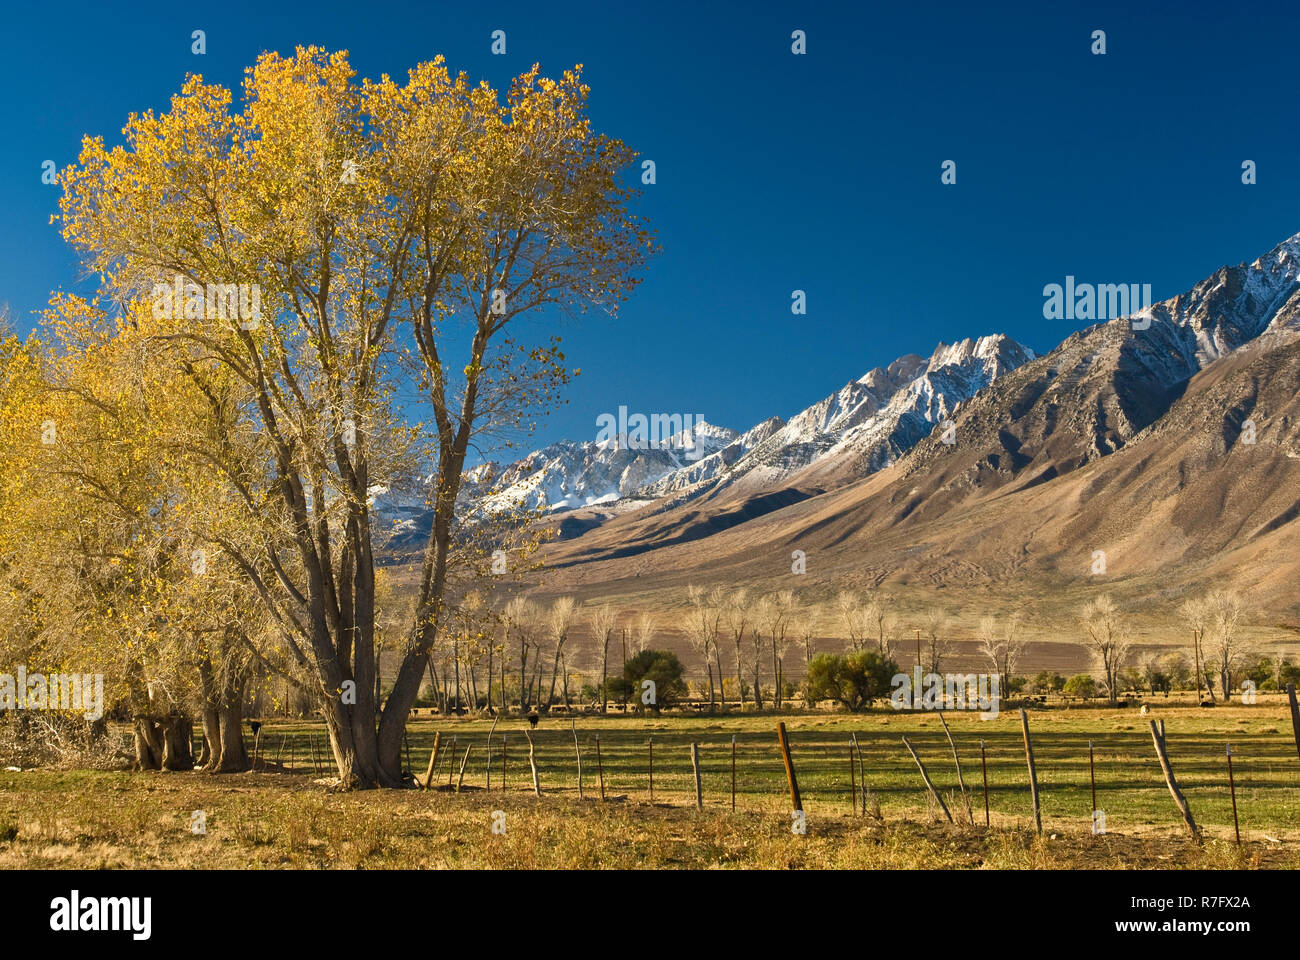 Mt Humphreys in Eastern Sierra Nevada and cottonwood trees in autumn foliage, Round Valley near Bishop, California, USA - Stock Image